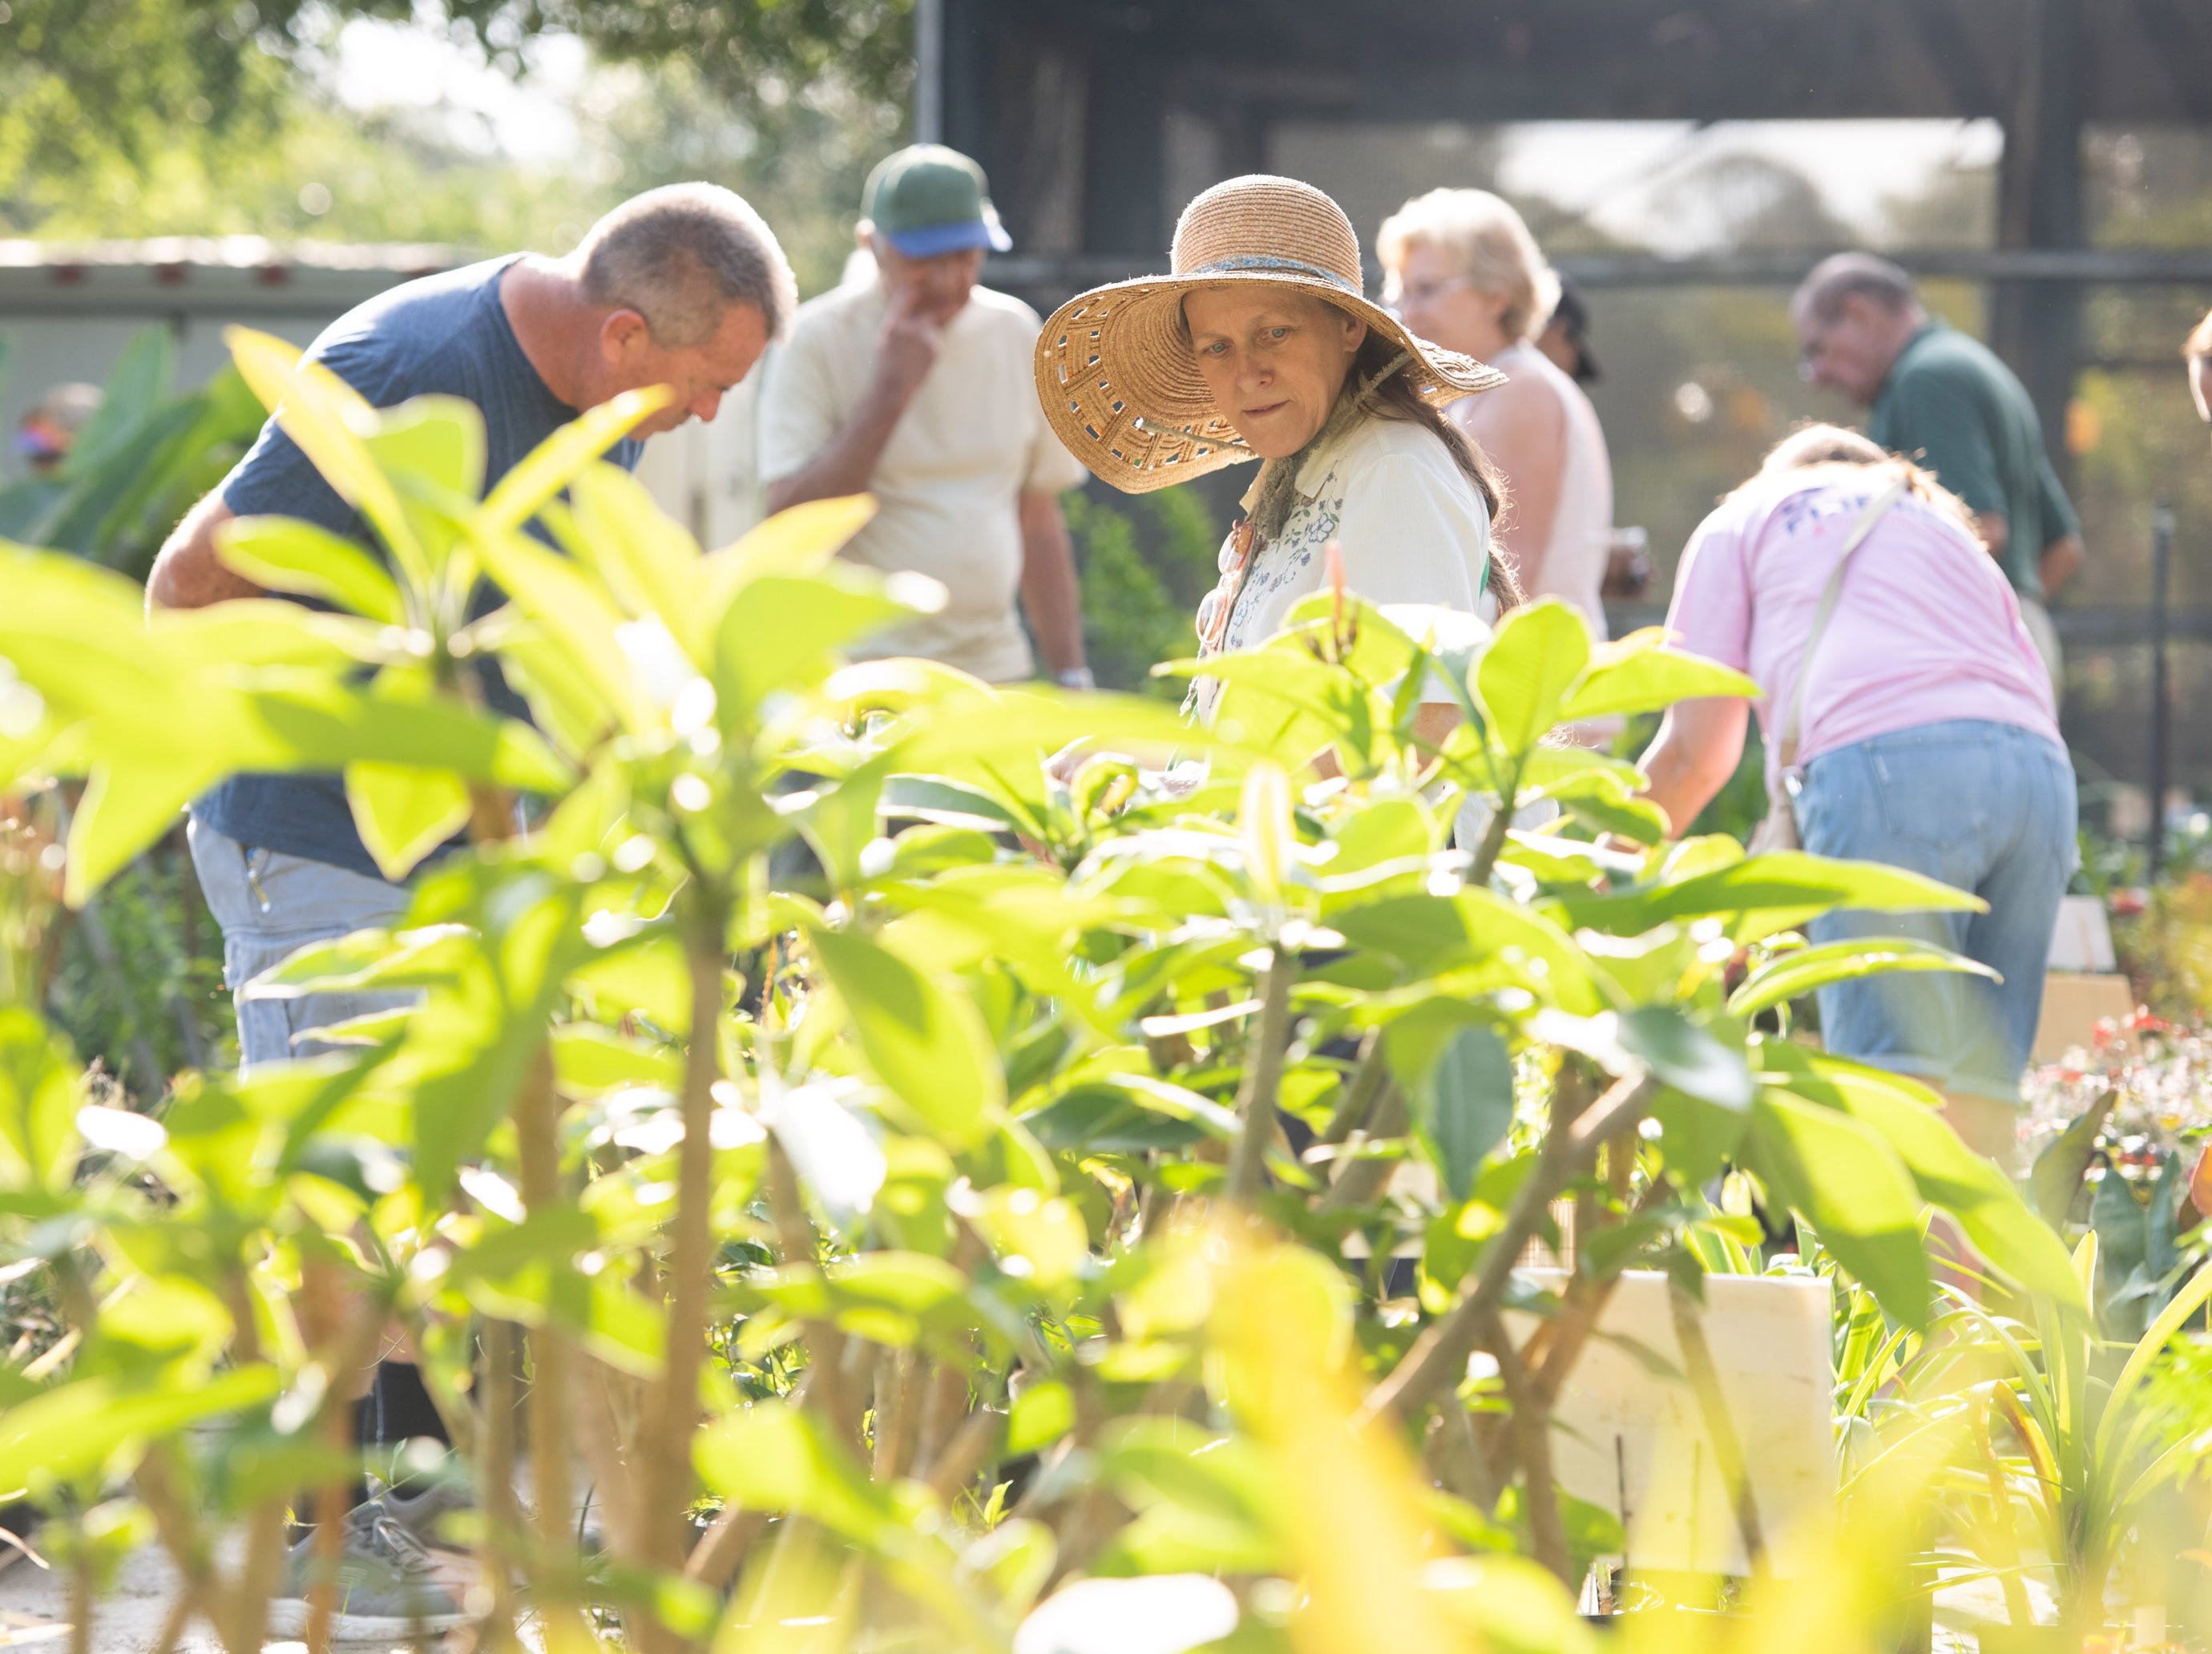 The Spring into Gardening Festival with the St. Lucie County Master Gardener Volunteers takes place Saturday, May 11, 2019, at the University of Florida's IFAS Extension in Fort Pierce.